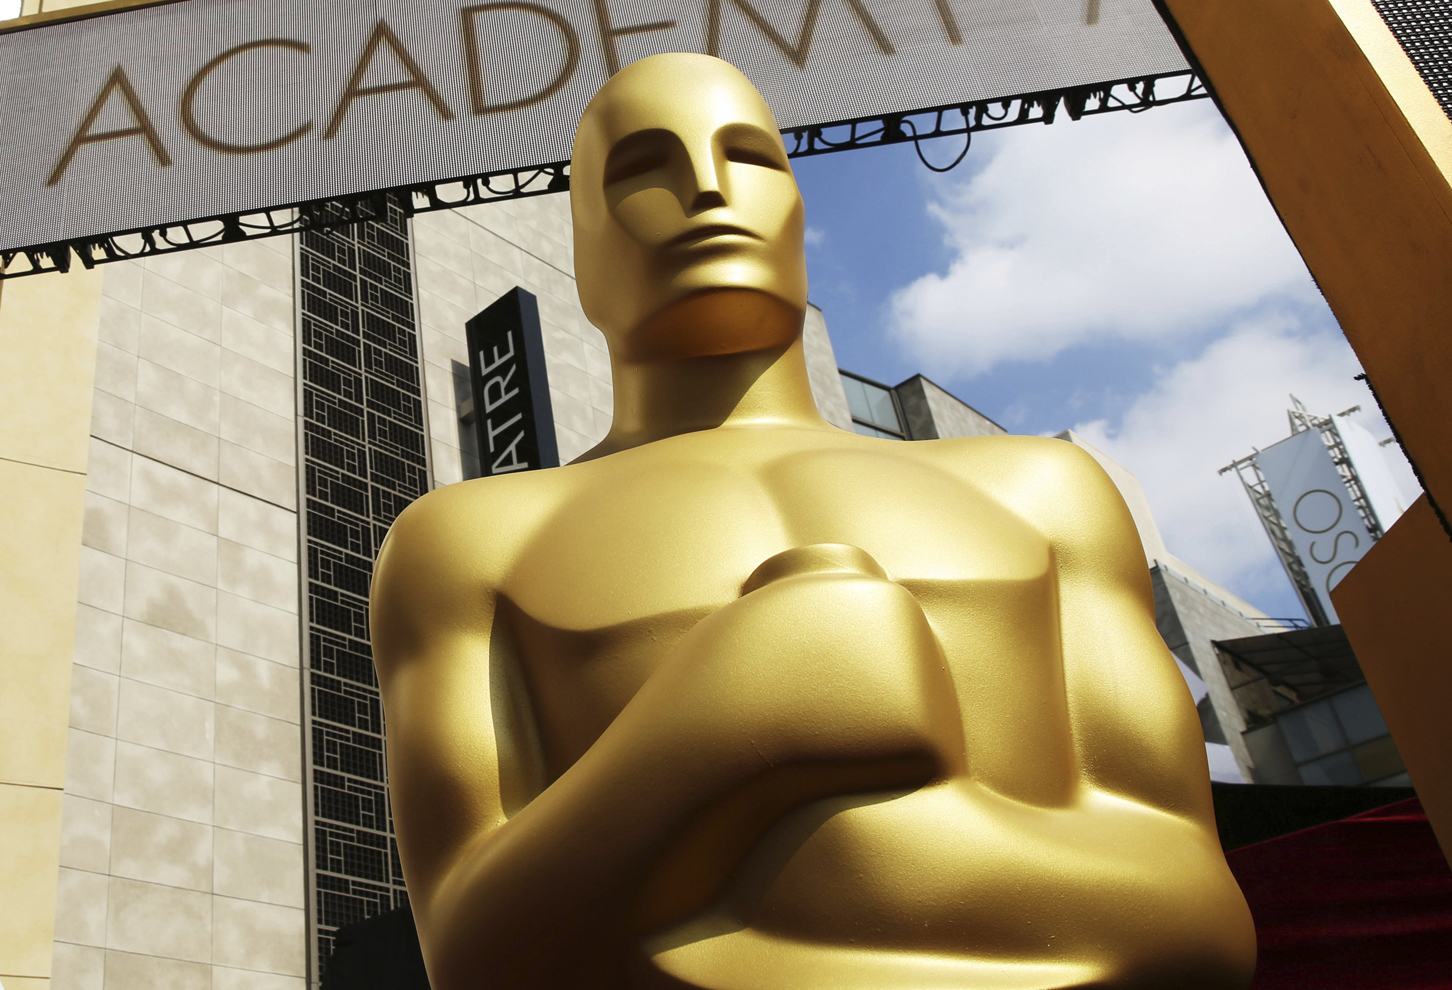 The Academy's Board of Governors also decided to extend the eligibility window beyond the calendar year to Feb. 28, 2021, for feature films, and delay the opening of the Academy Museum of Motion Pictures from December until April 30, 2021. (Photo by Matt Sayles/Invision/AP, File)